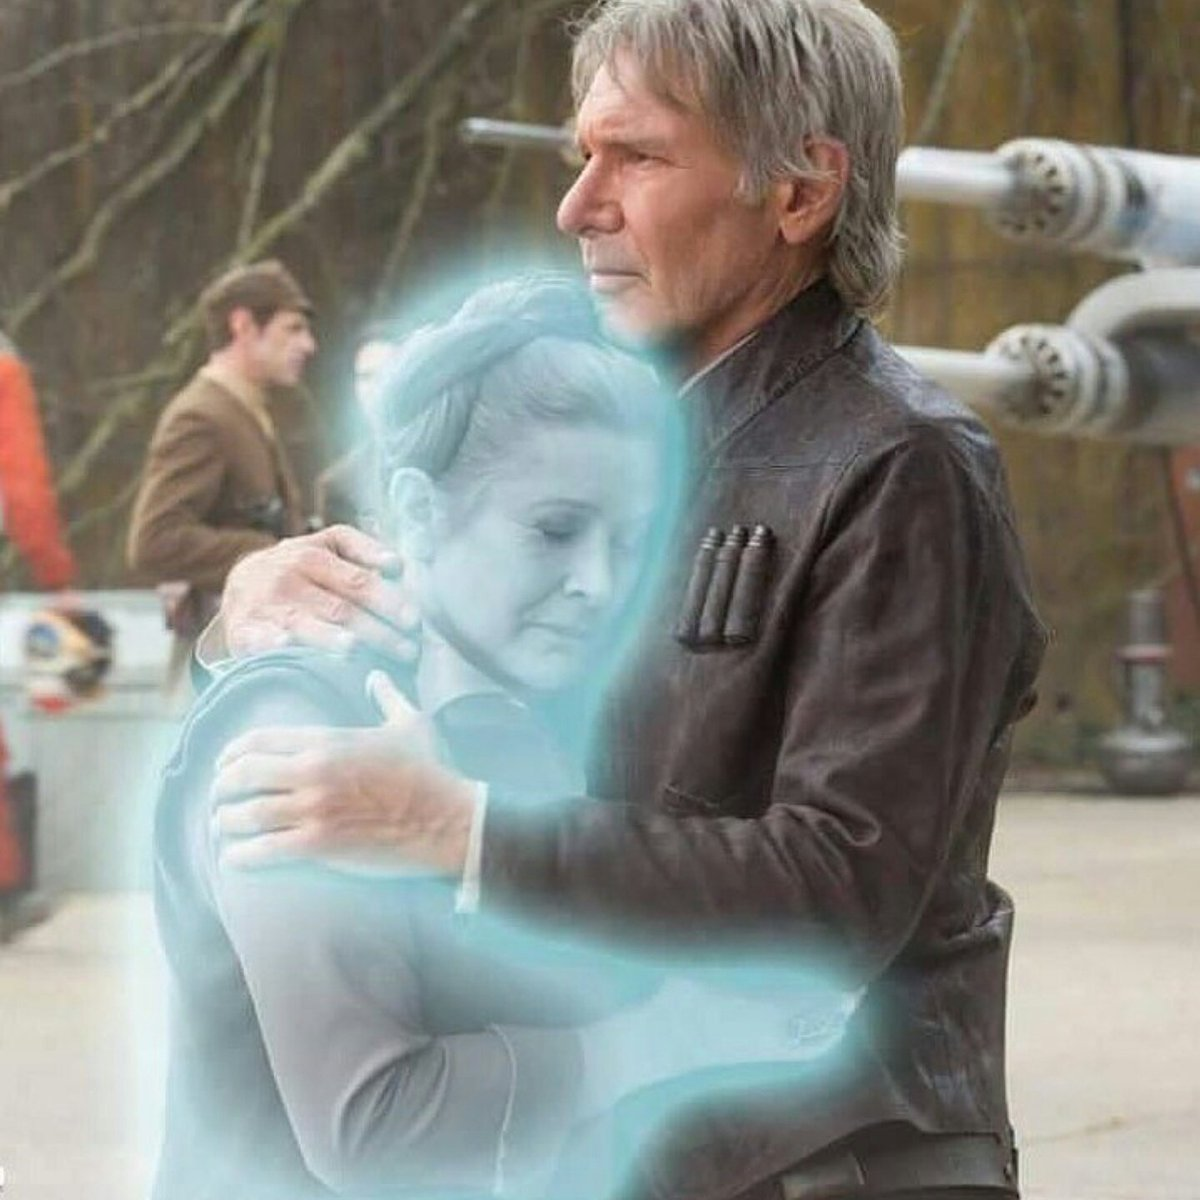 I just lost it upon seeing this. May the Force be with you. #RIPCarrie #CarrieFisher https://t.co/At5B3vcxzU